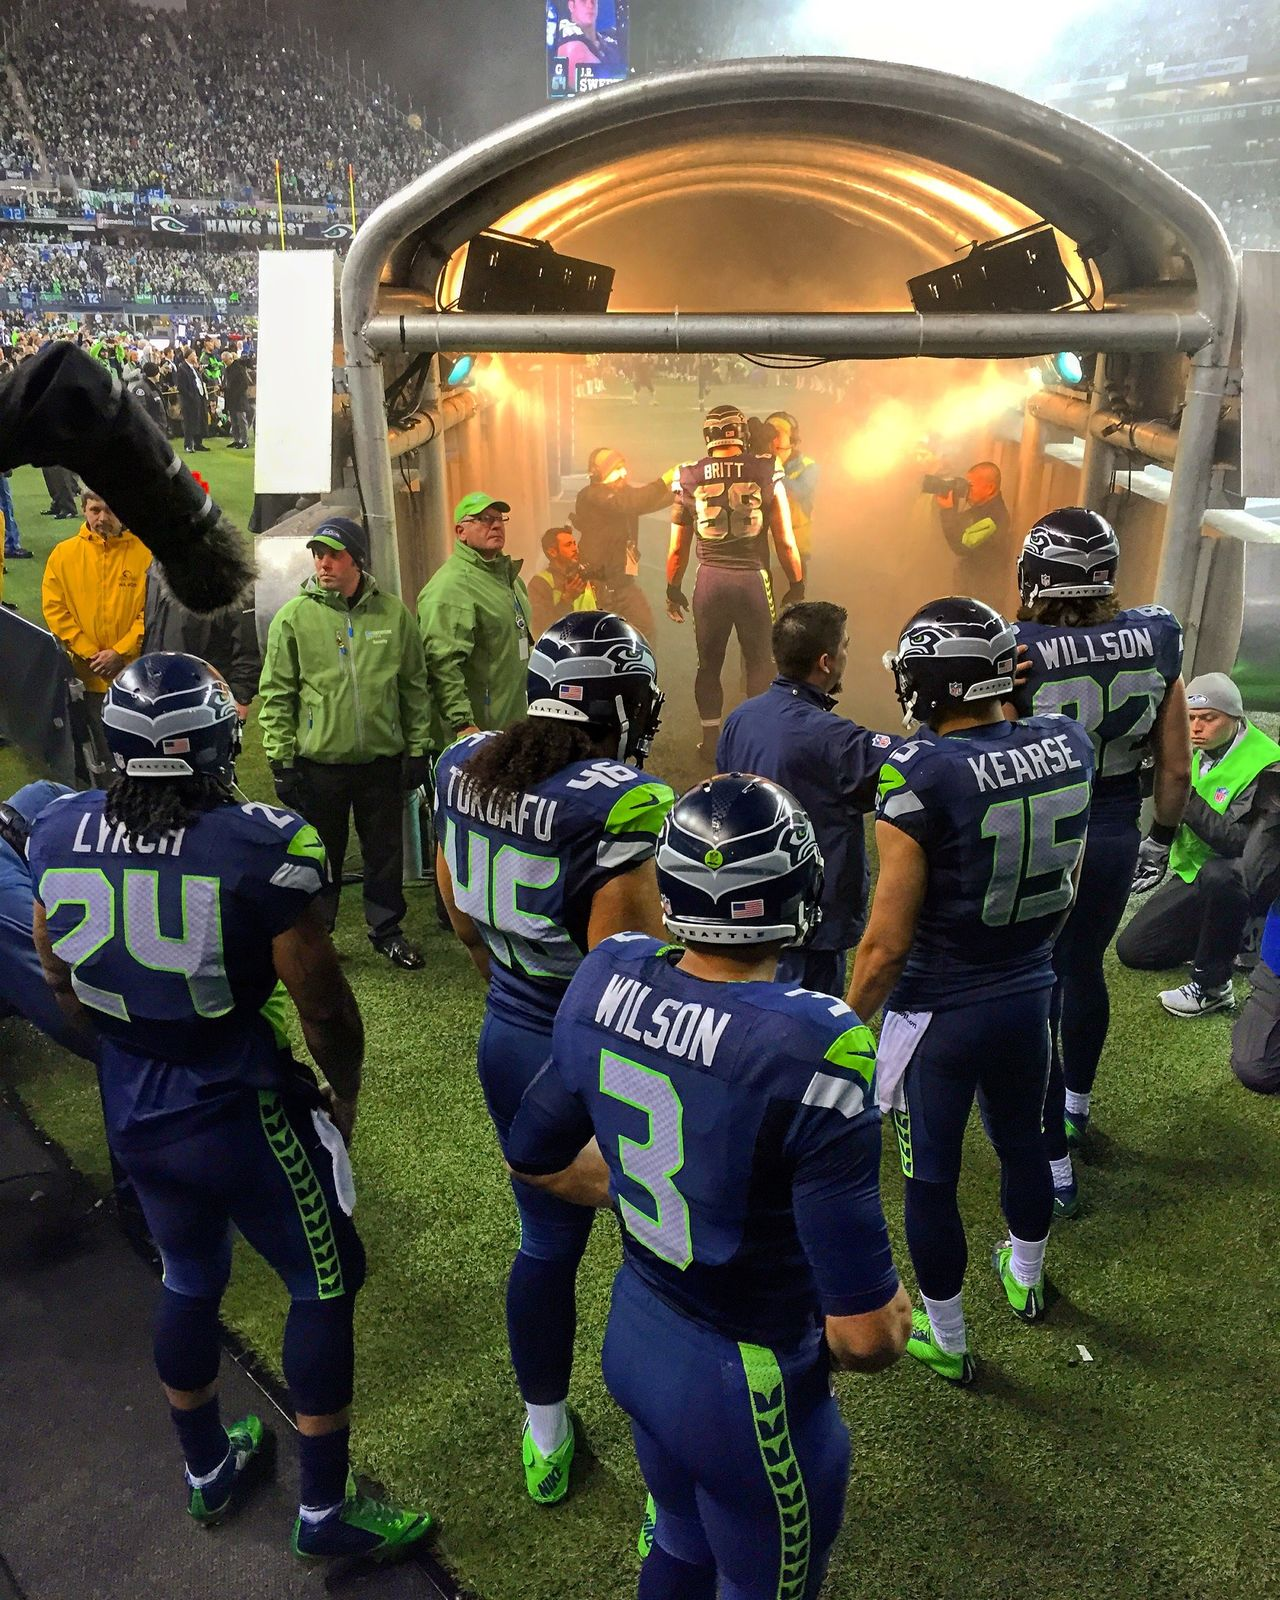 Seattle Gohawks PNW Seahawks Pacific Northwest  Washington Washington State 12s Loveit Football NFL